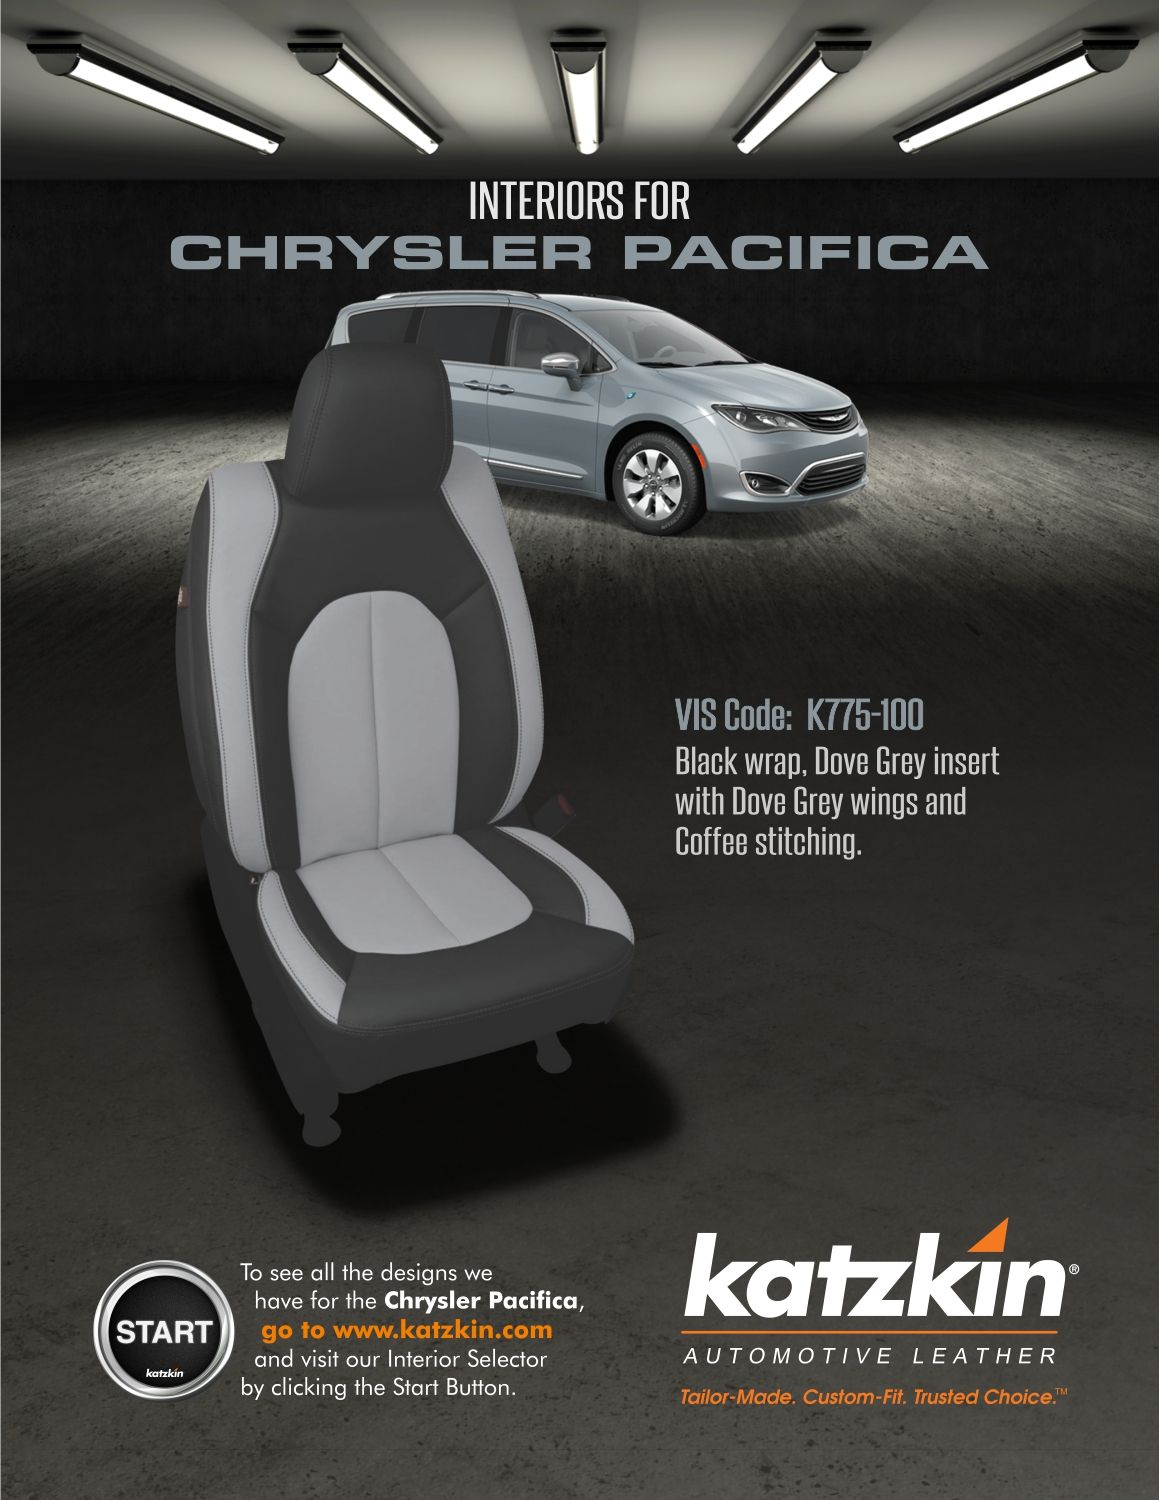 2017 Chrysler Pacifica (eBrochure)